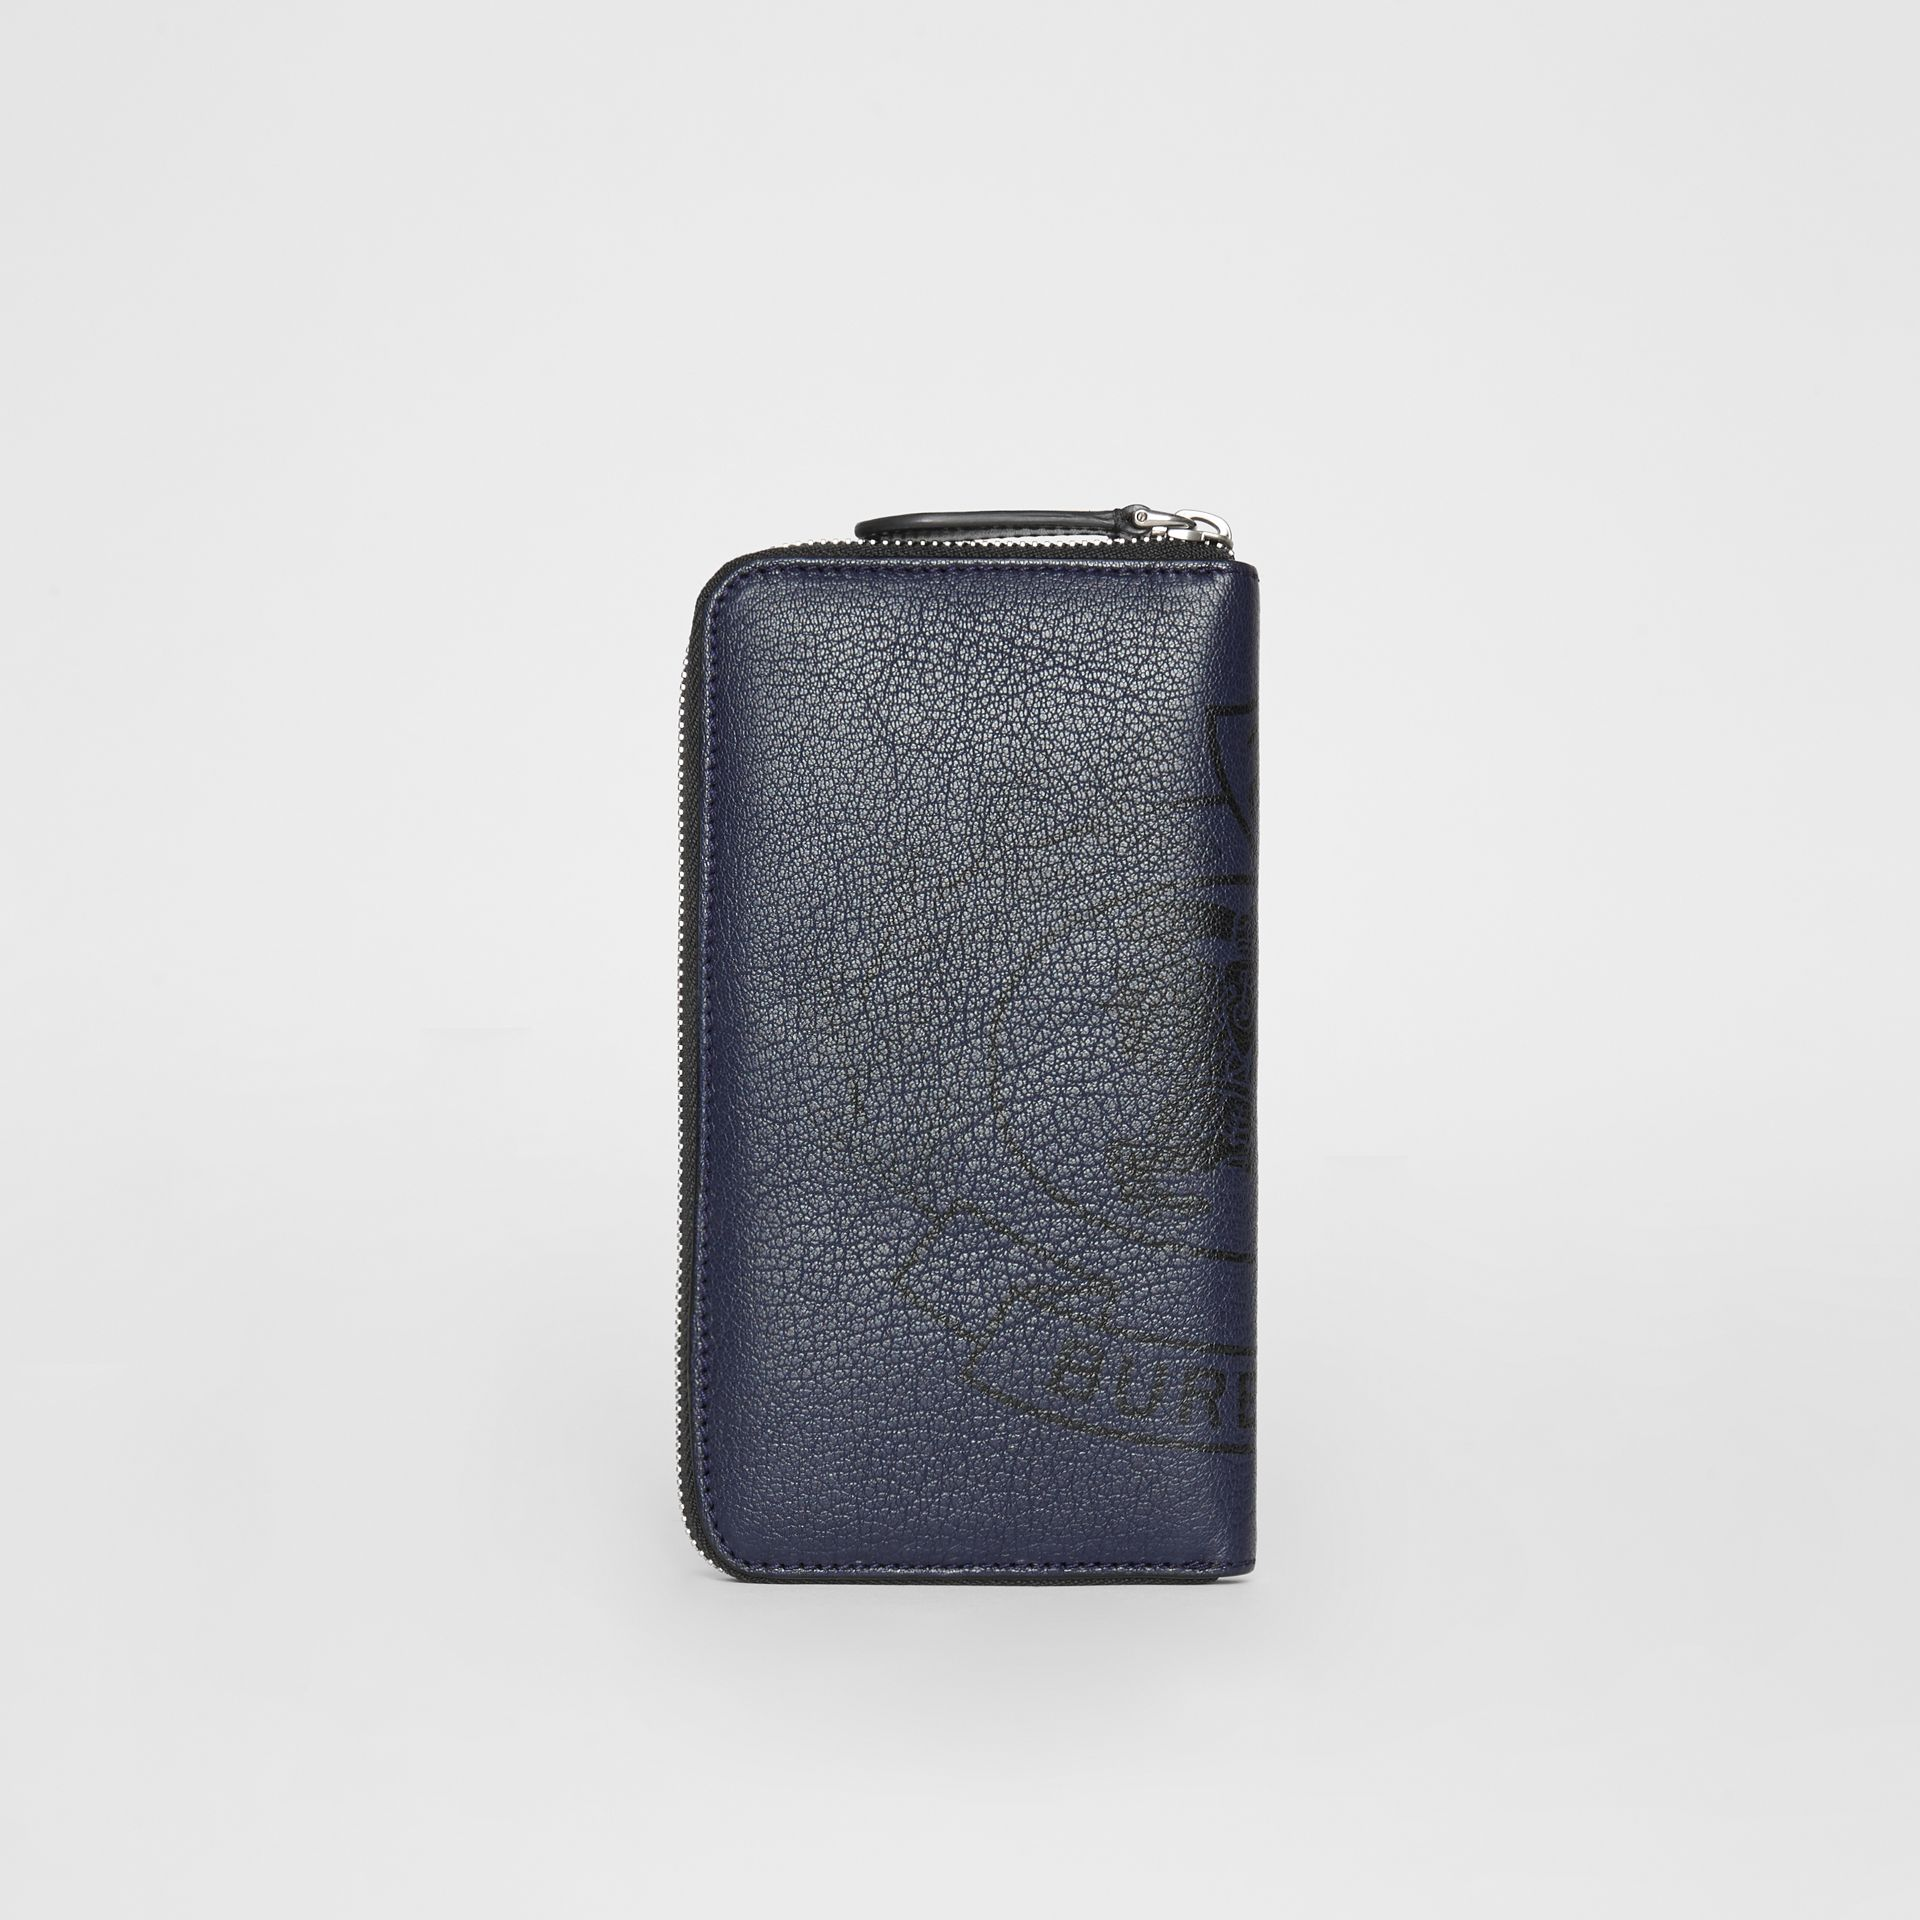 Crest Print Leather Ziparound Wallet in Storm Blue - Men | Burberry United Kingdom - gallery image 5